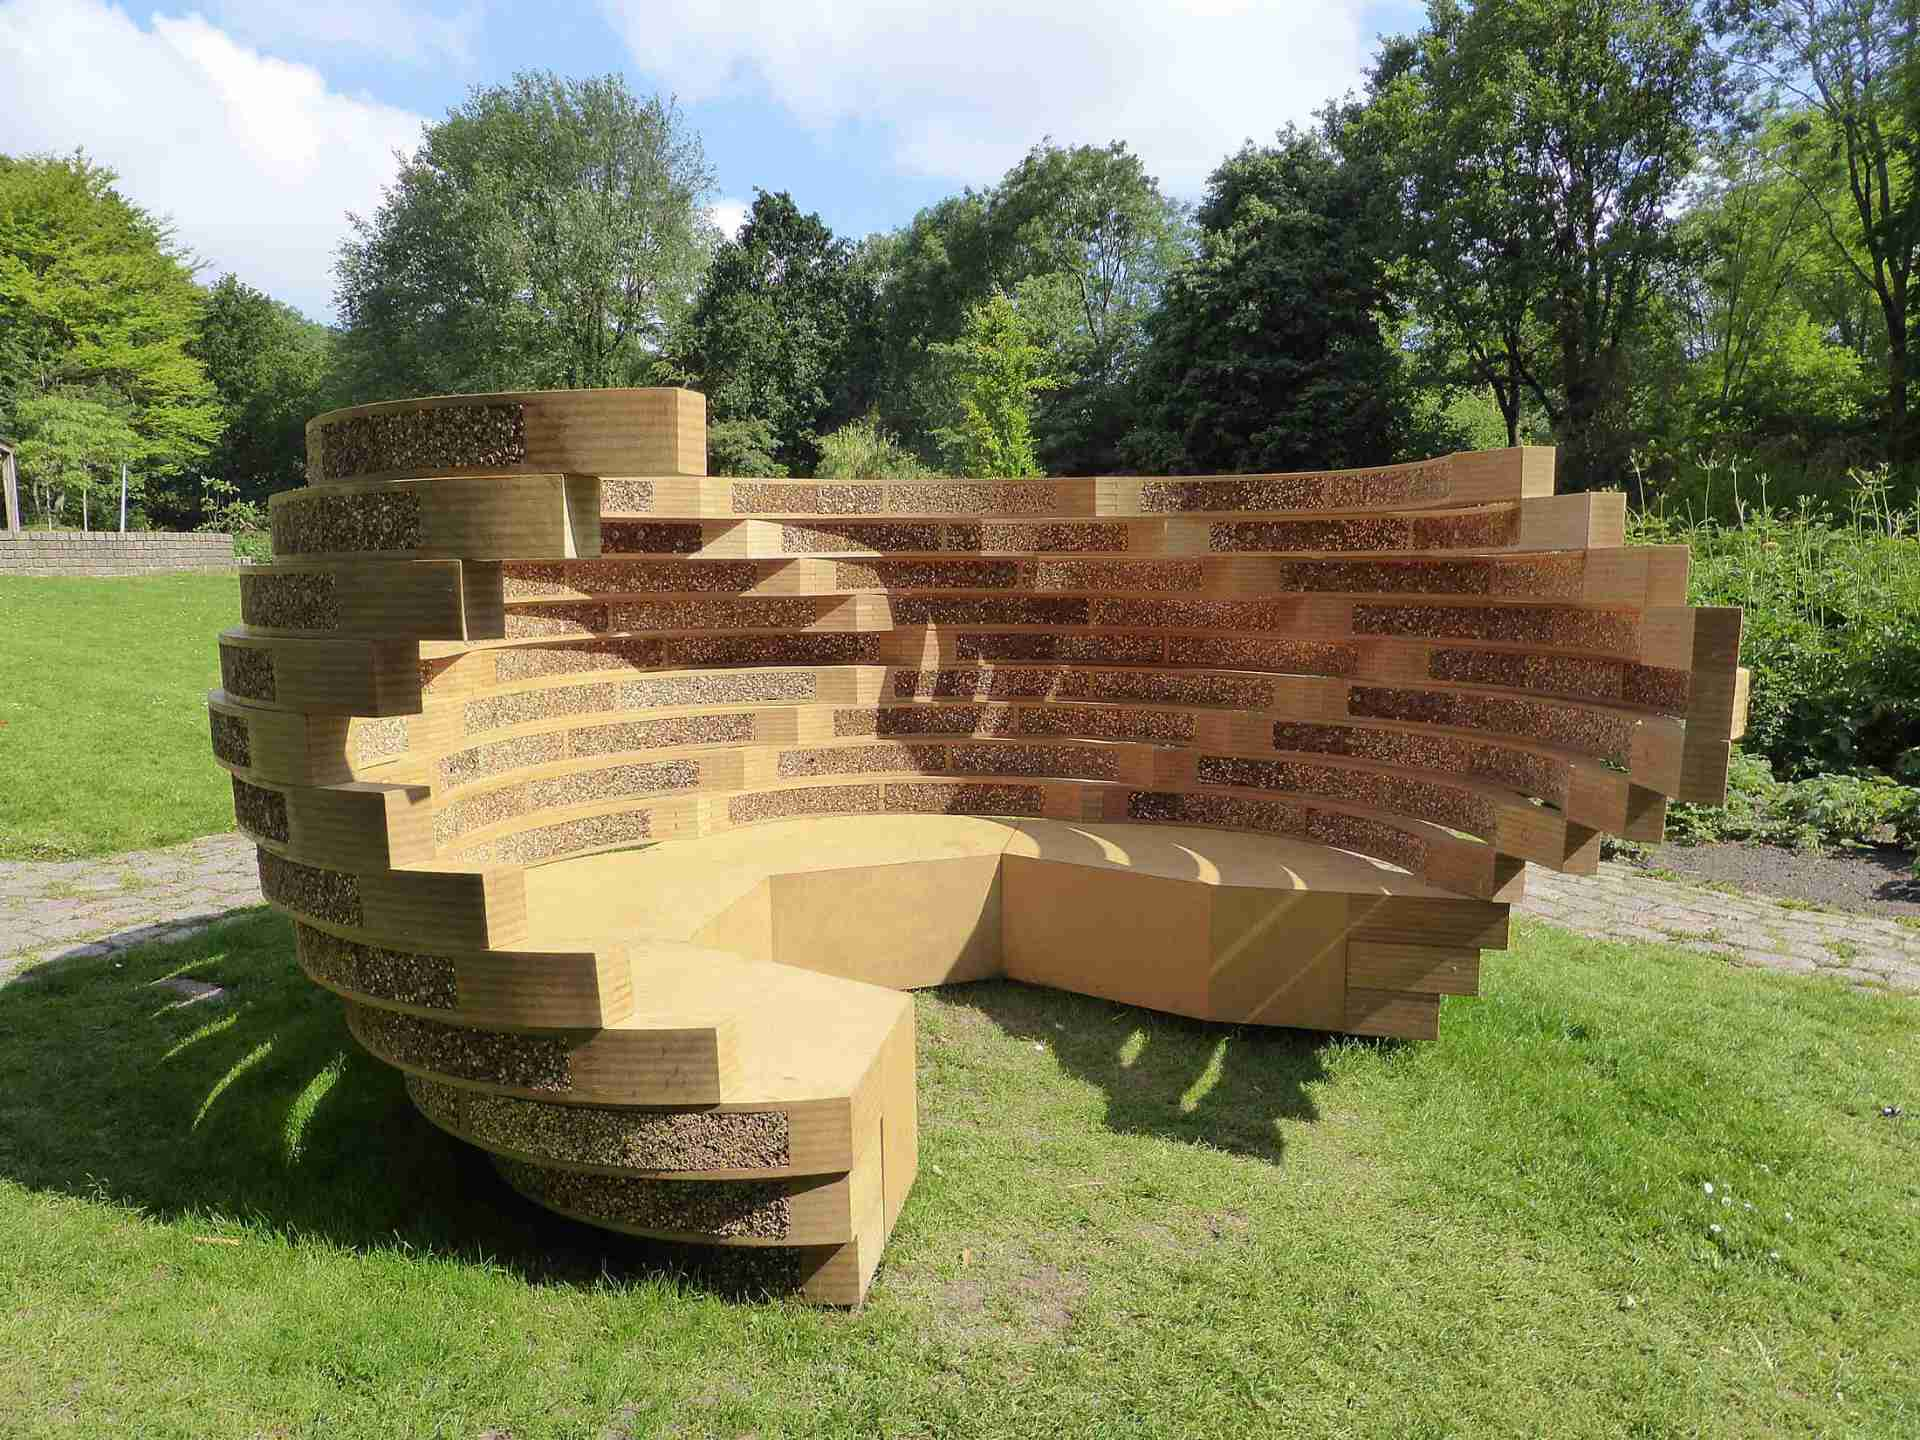 sculptural-buzz-bench-sitting-area-and-biotope-wild-bees-11